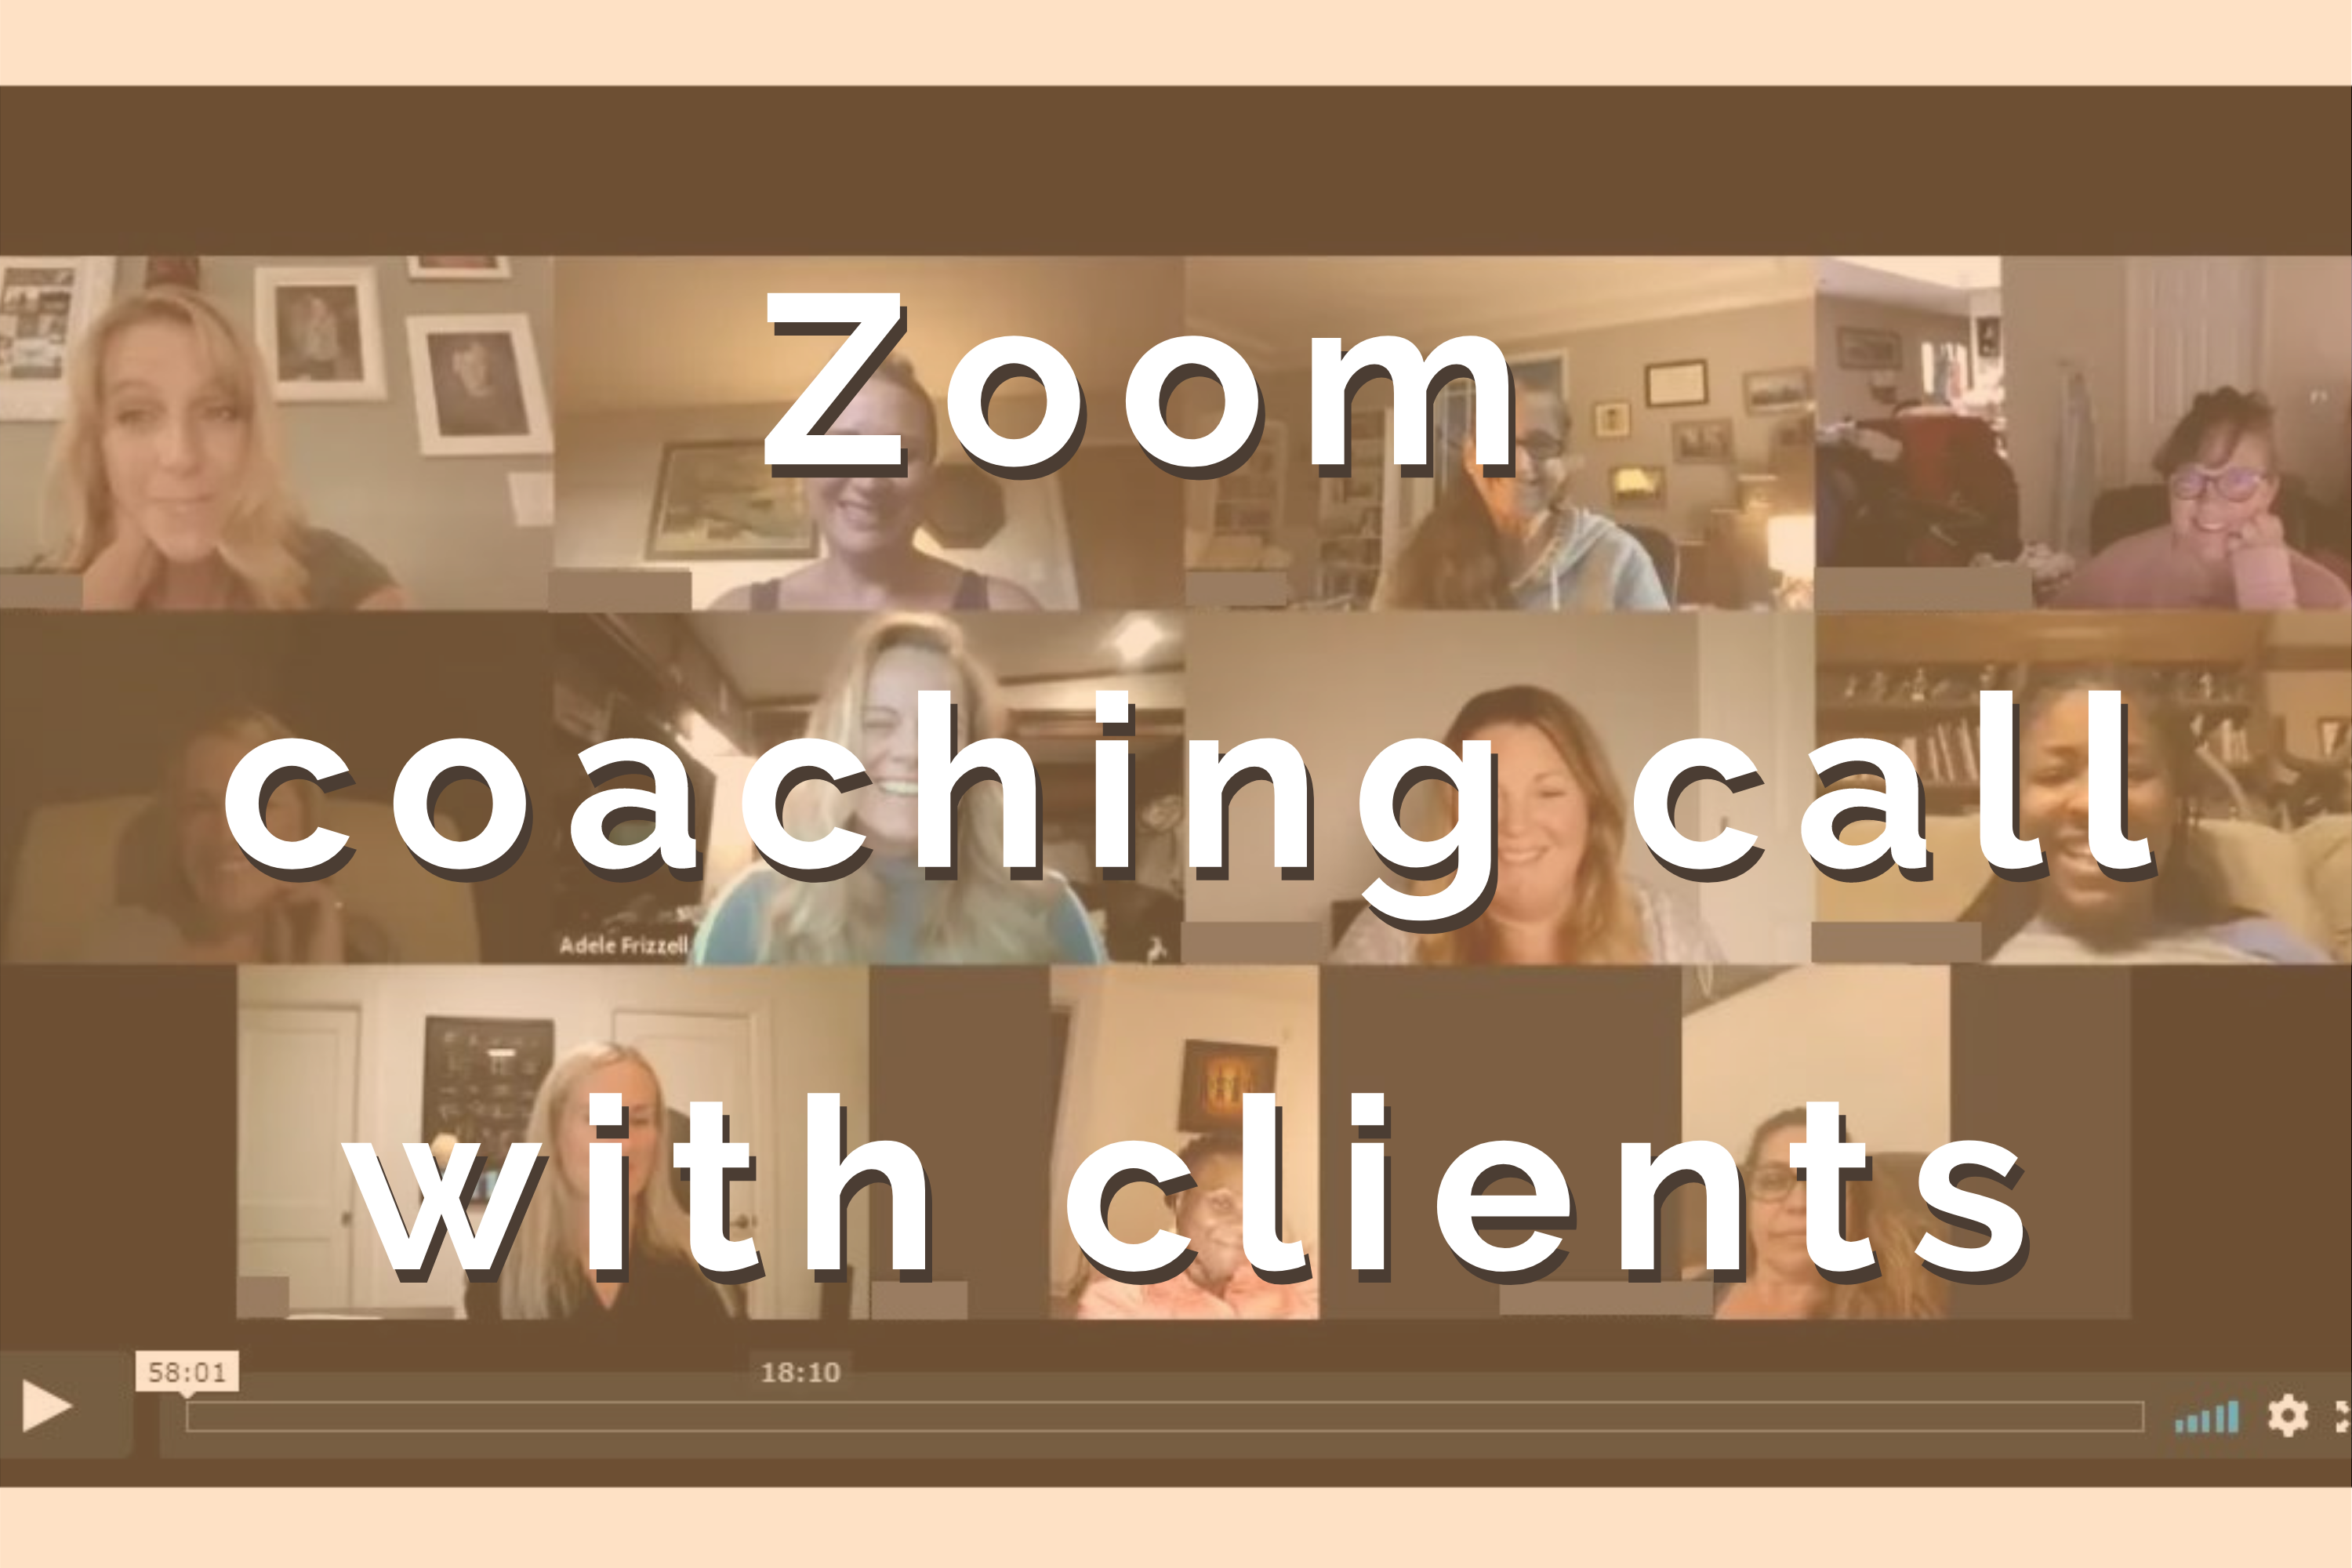 Zoom coaching call with clients